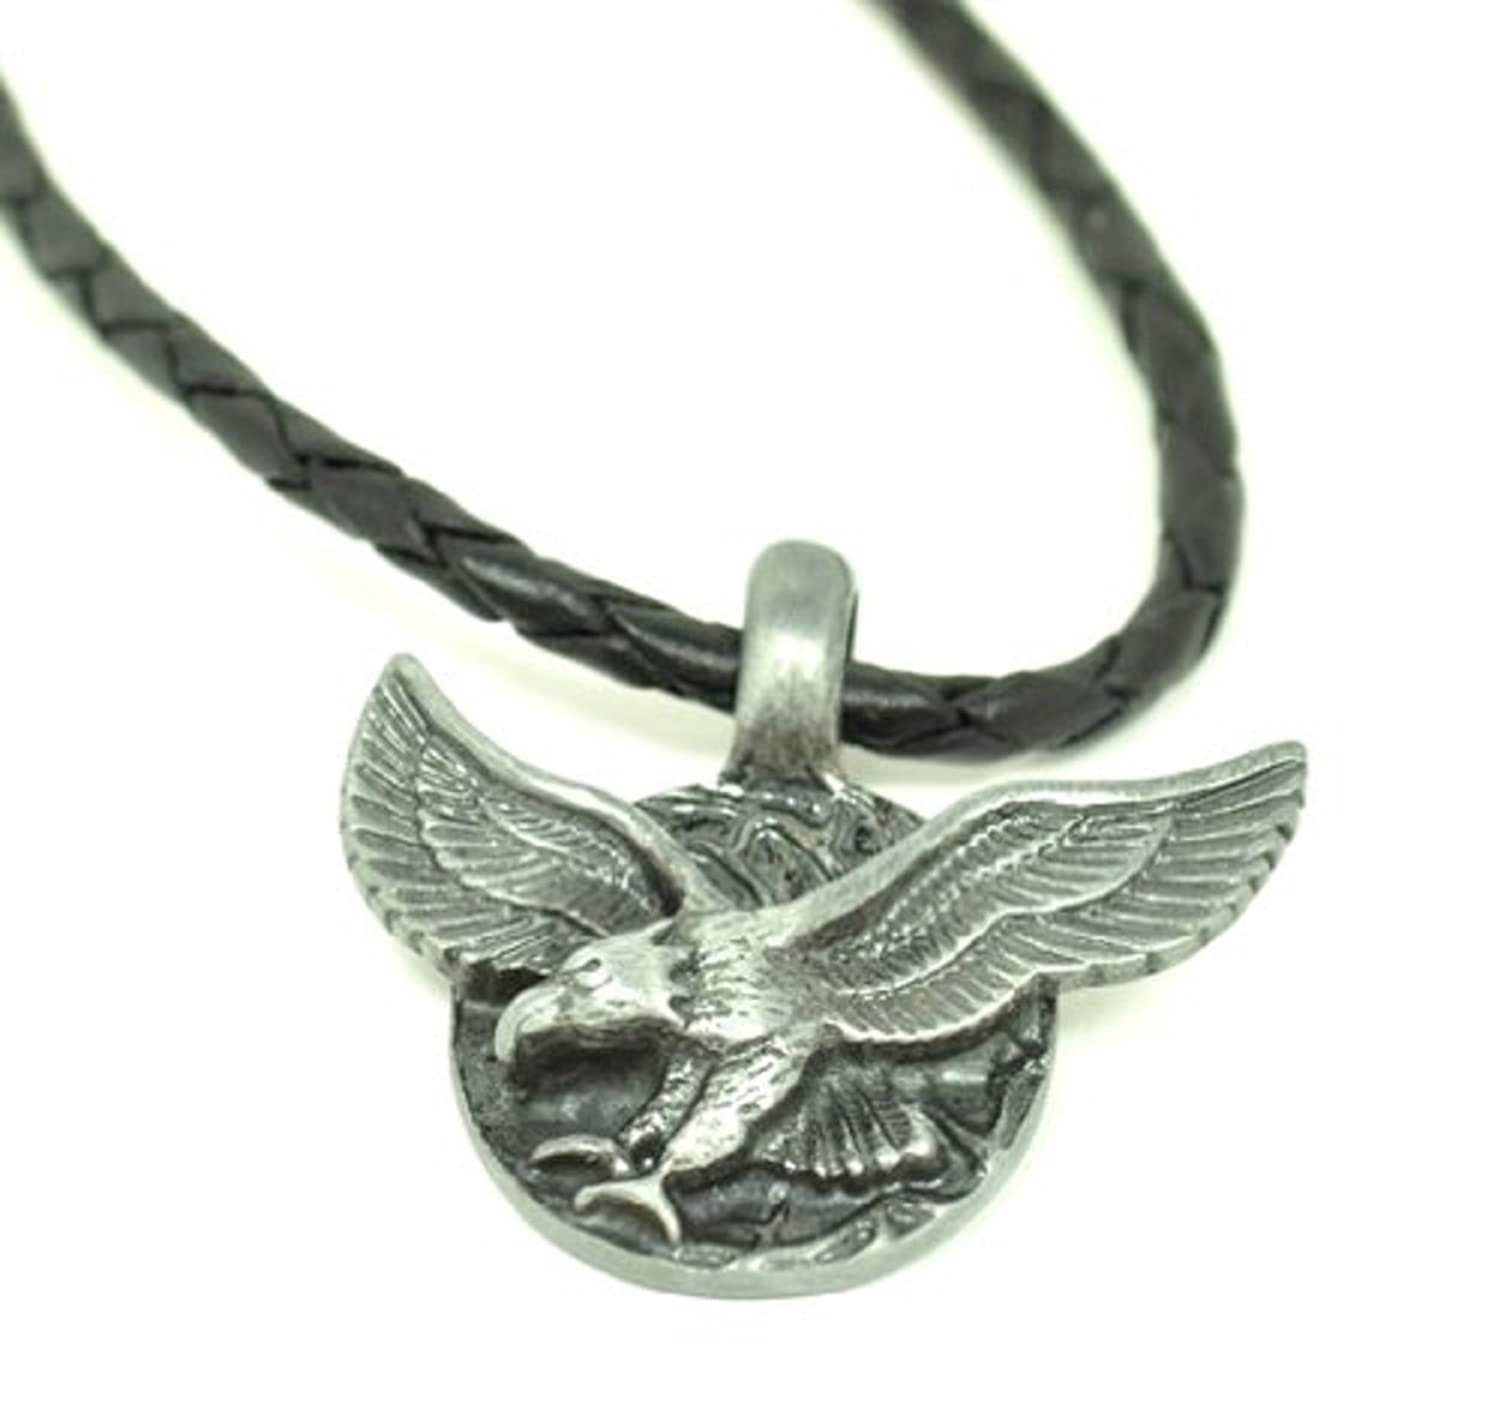 patriotic necklace pendant rope jewelry statement large giant bold tri color pin eagle chain